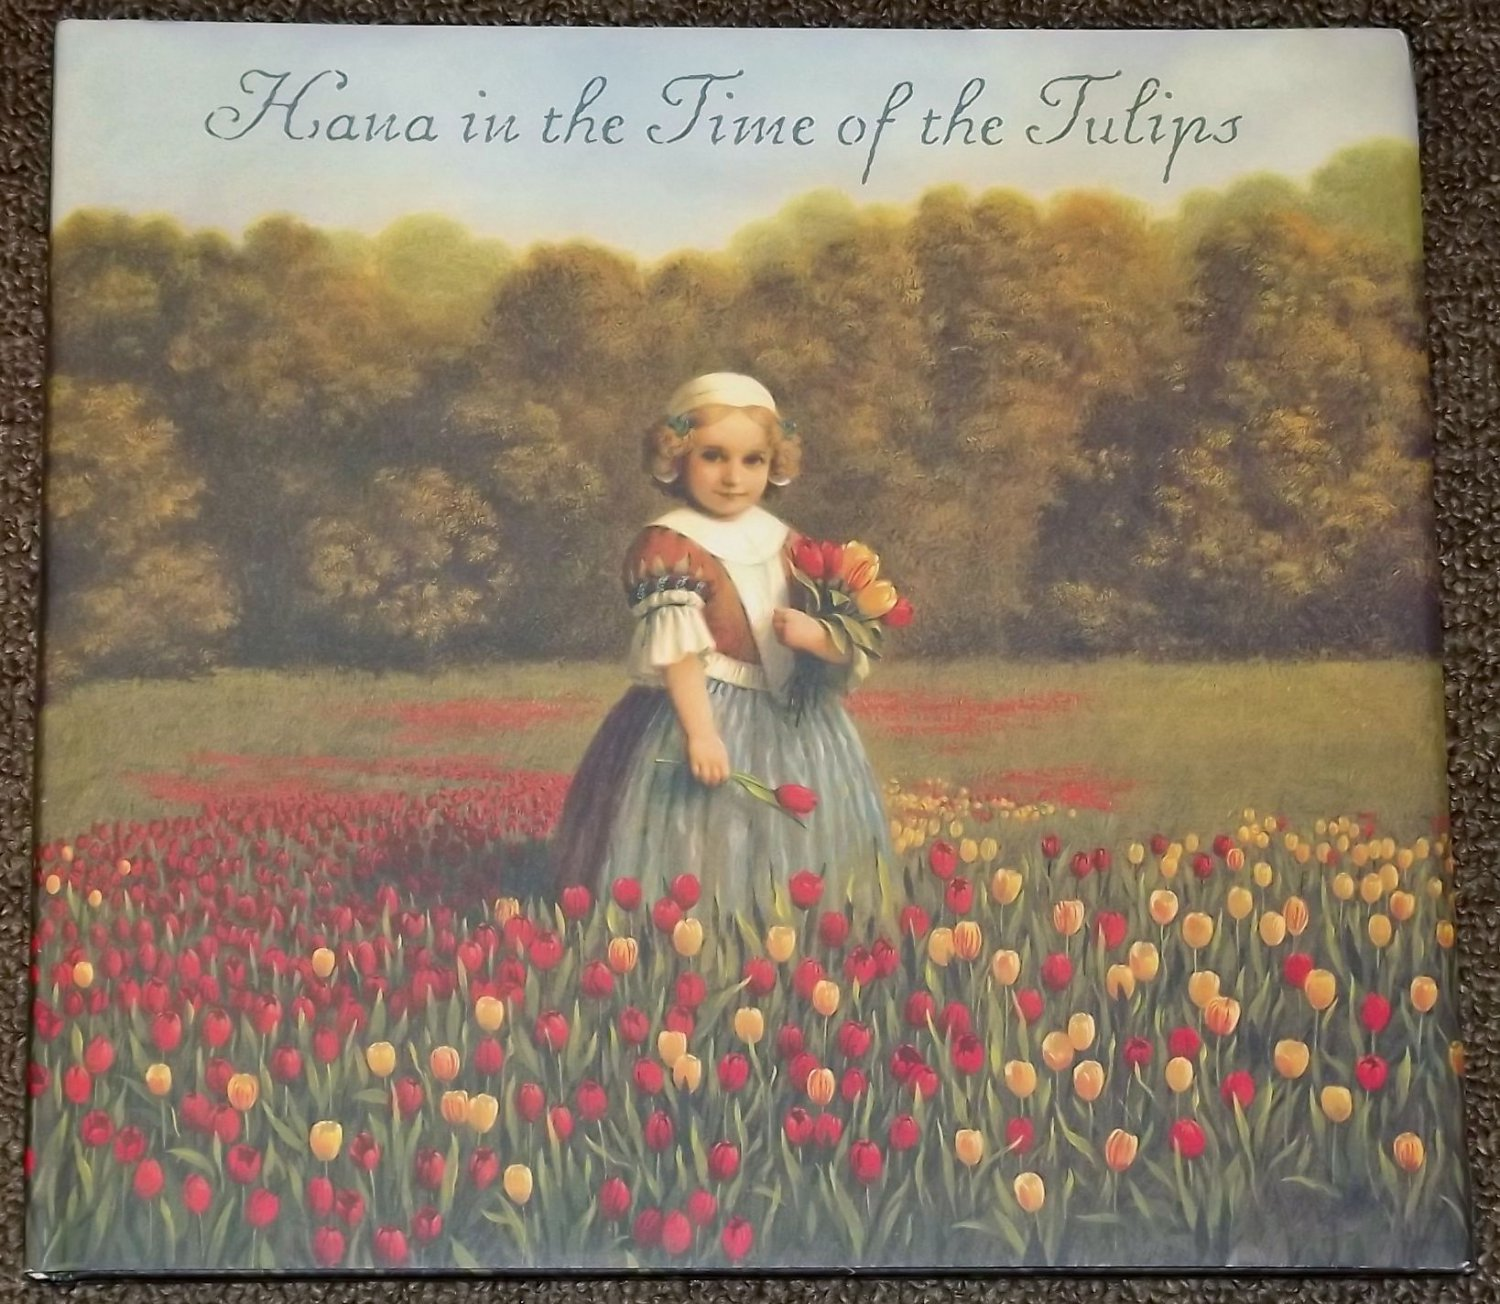 Hana in the Time of the Tulips HB DJ by Deborah Noyes 2004